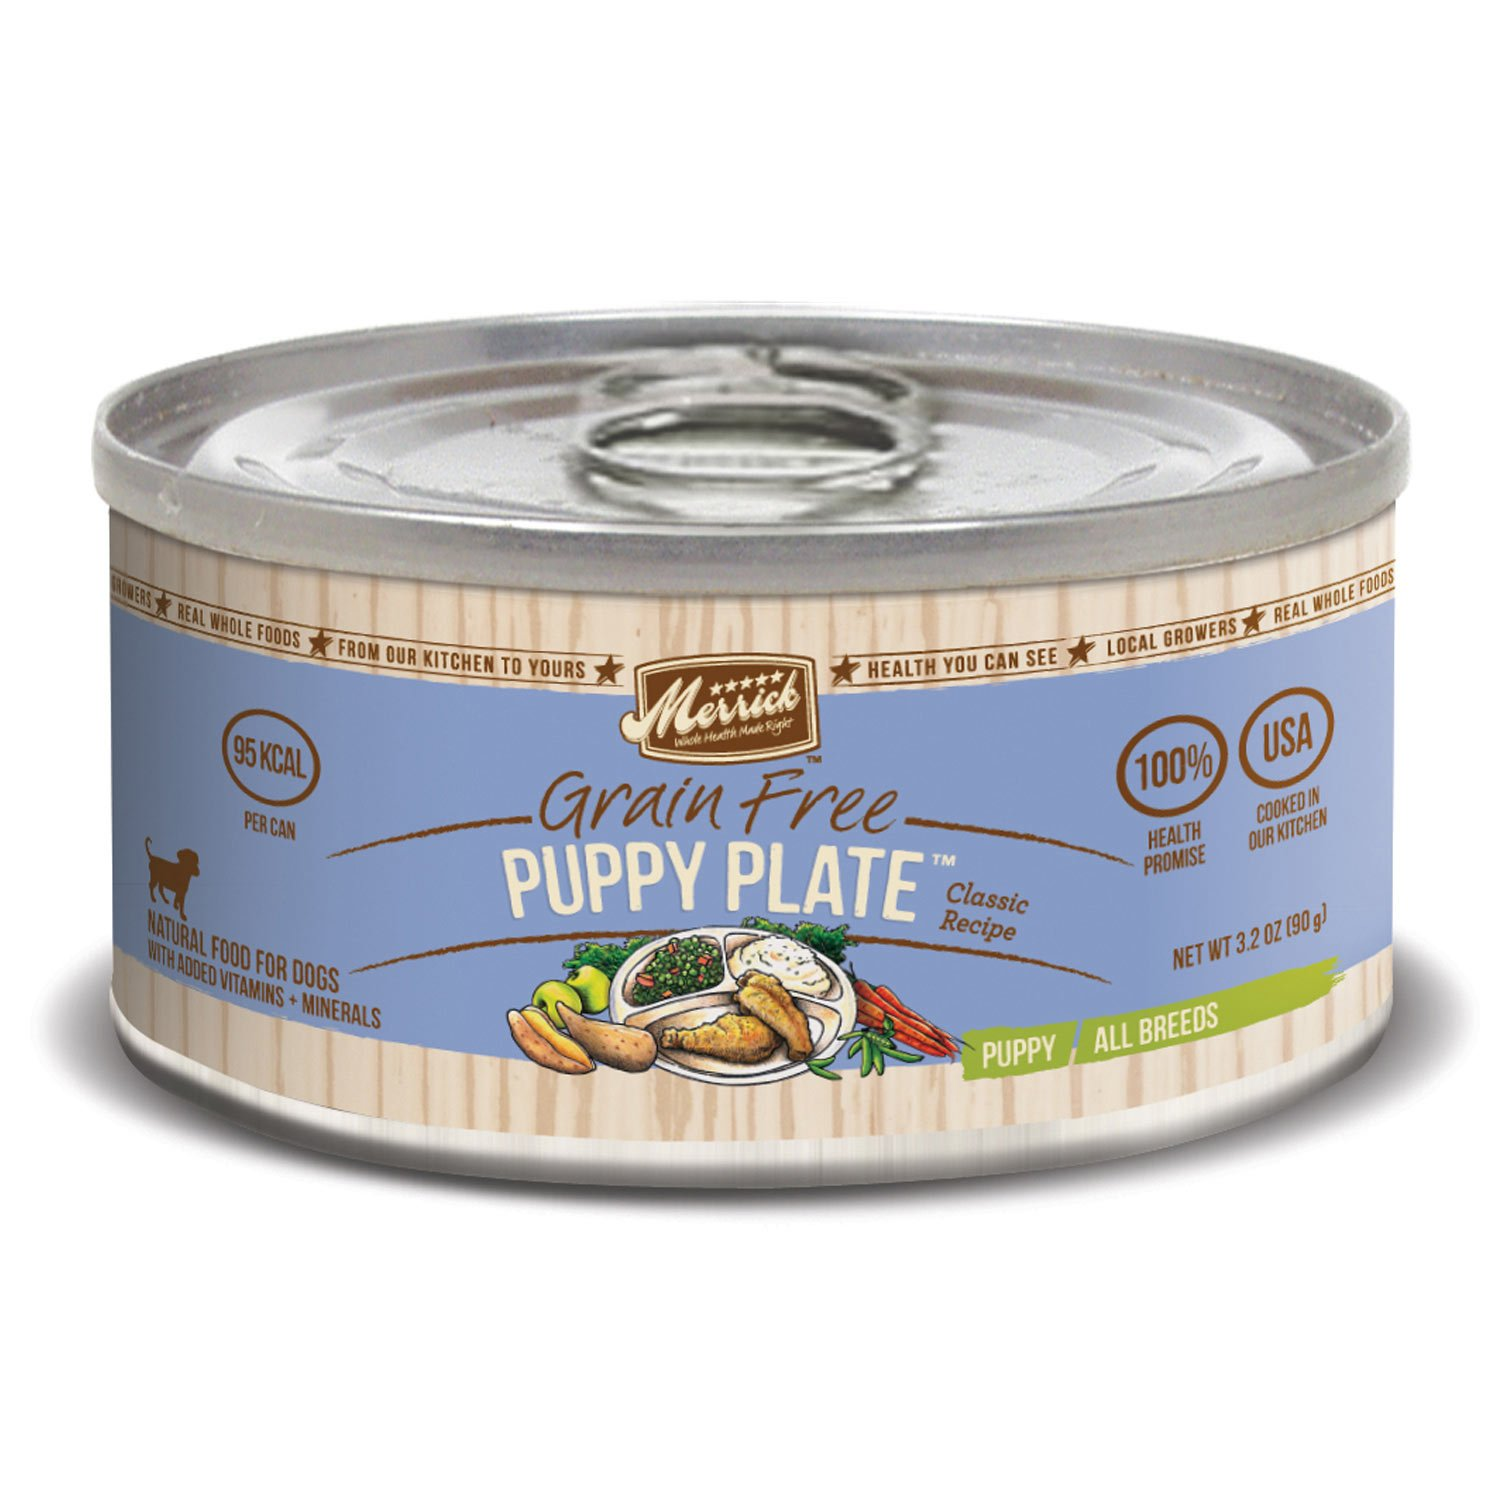 Merrick Classic Grain Free Puppy Plate Canned Puppy Food